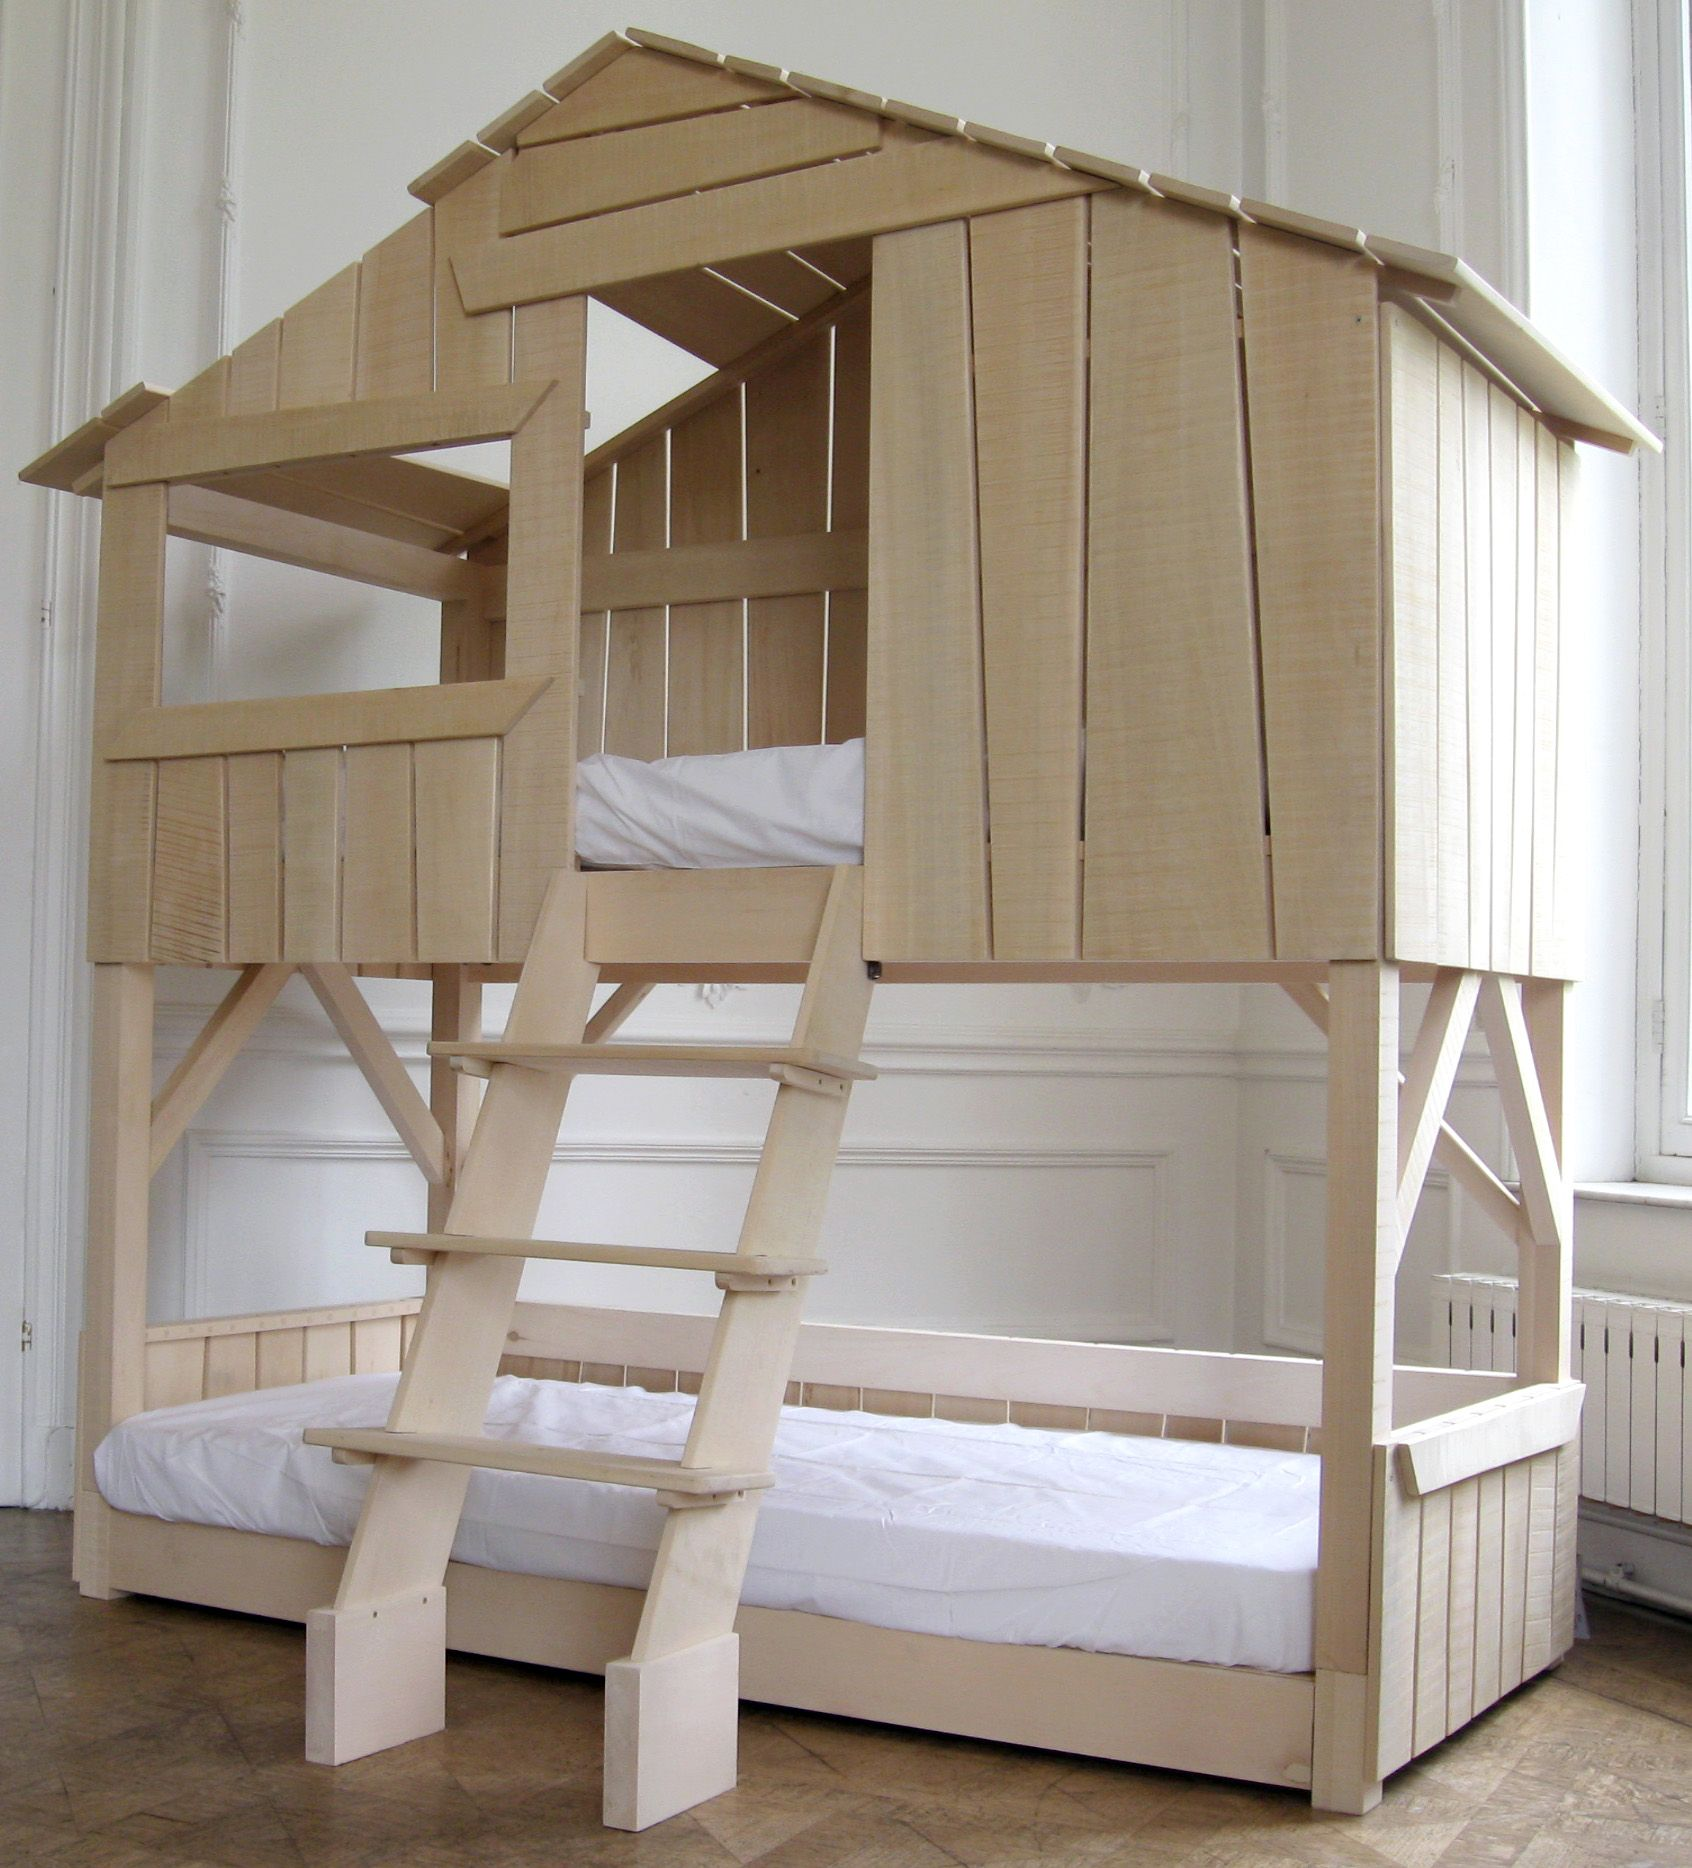 Amazing tree house bunk beds.. so cute for little ones and no one is on the ceiling.